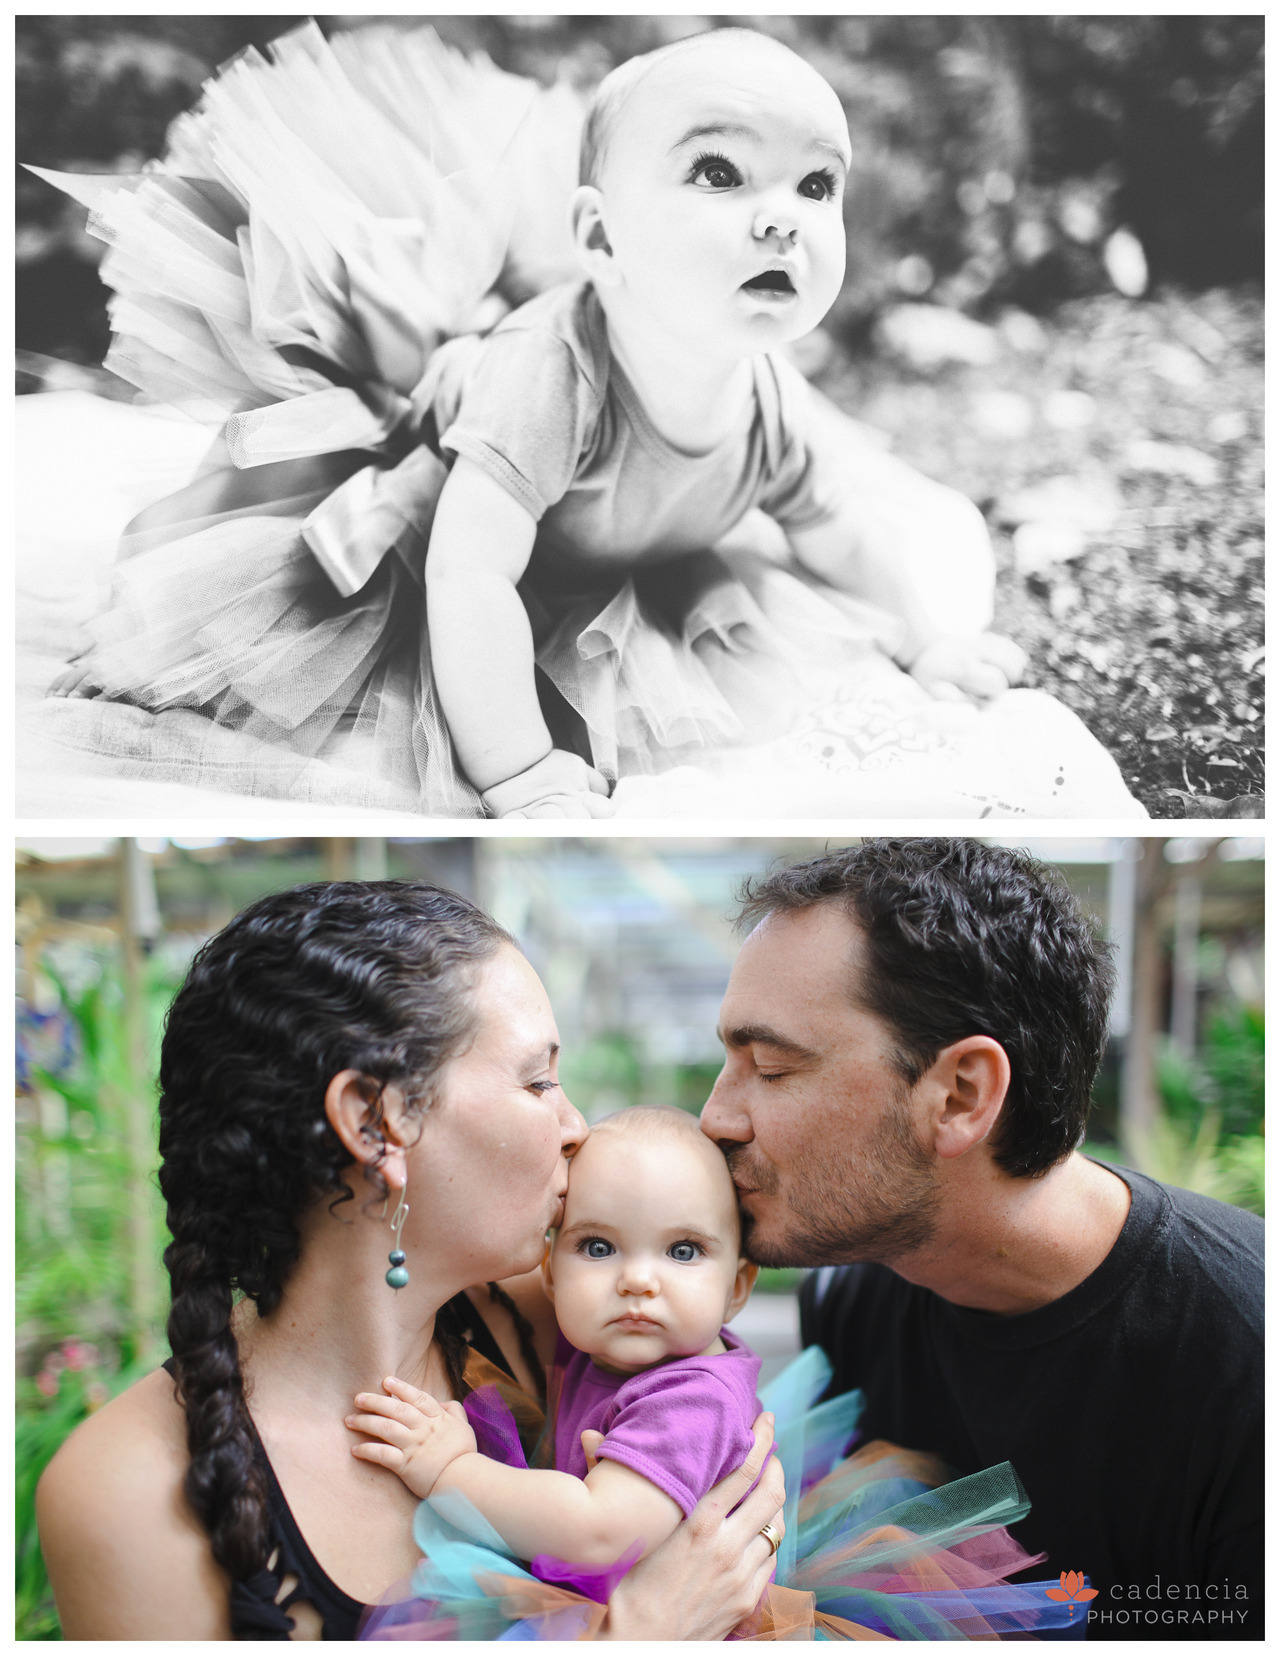 remy + sara + estelle's family session! see more on the Facebook here.